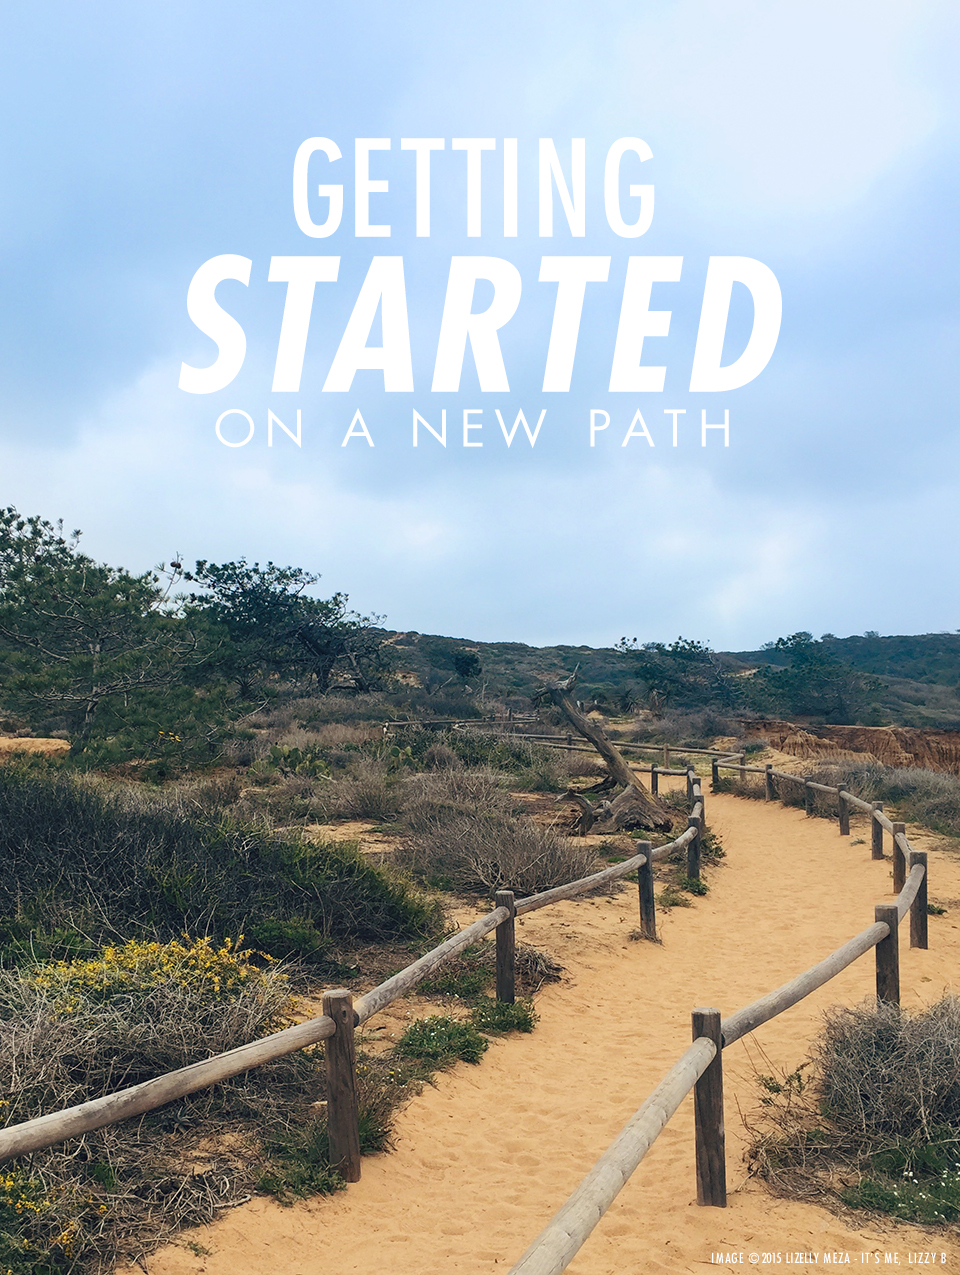 Getting Started on a New Path - The Most Important Step to Getting Started // It's Me, Lizzy B - Musings on Life, Business, & The Pursuit of Everyday Joy // Personal blog of Lizelly Meza from Lizzy B Loves